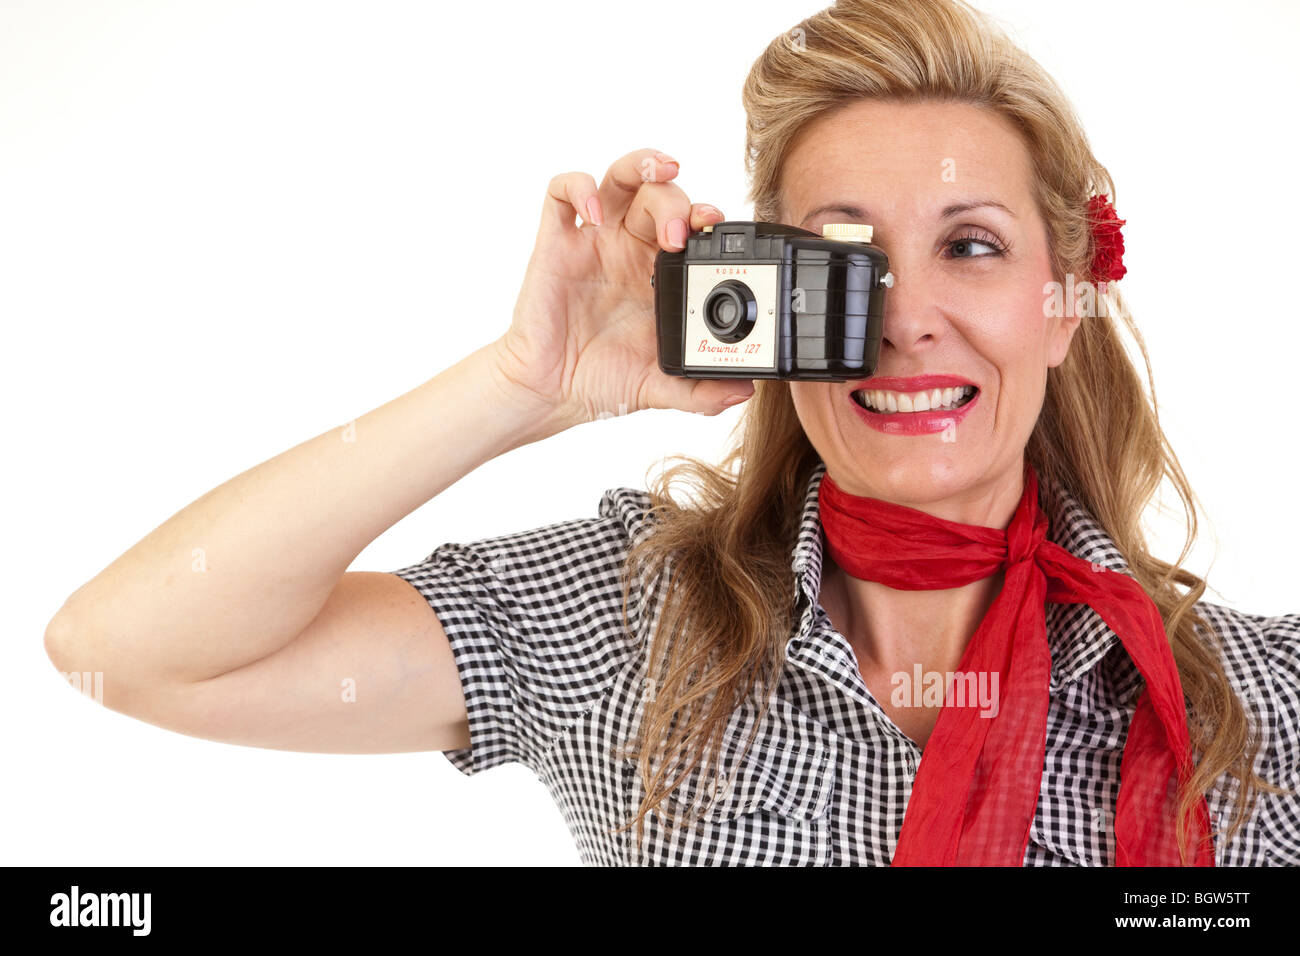 woman dressed in 1950's style holding a Kodak Brownie camera - Stock Image